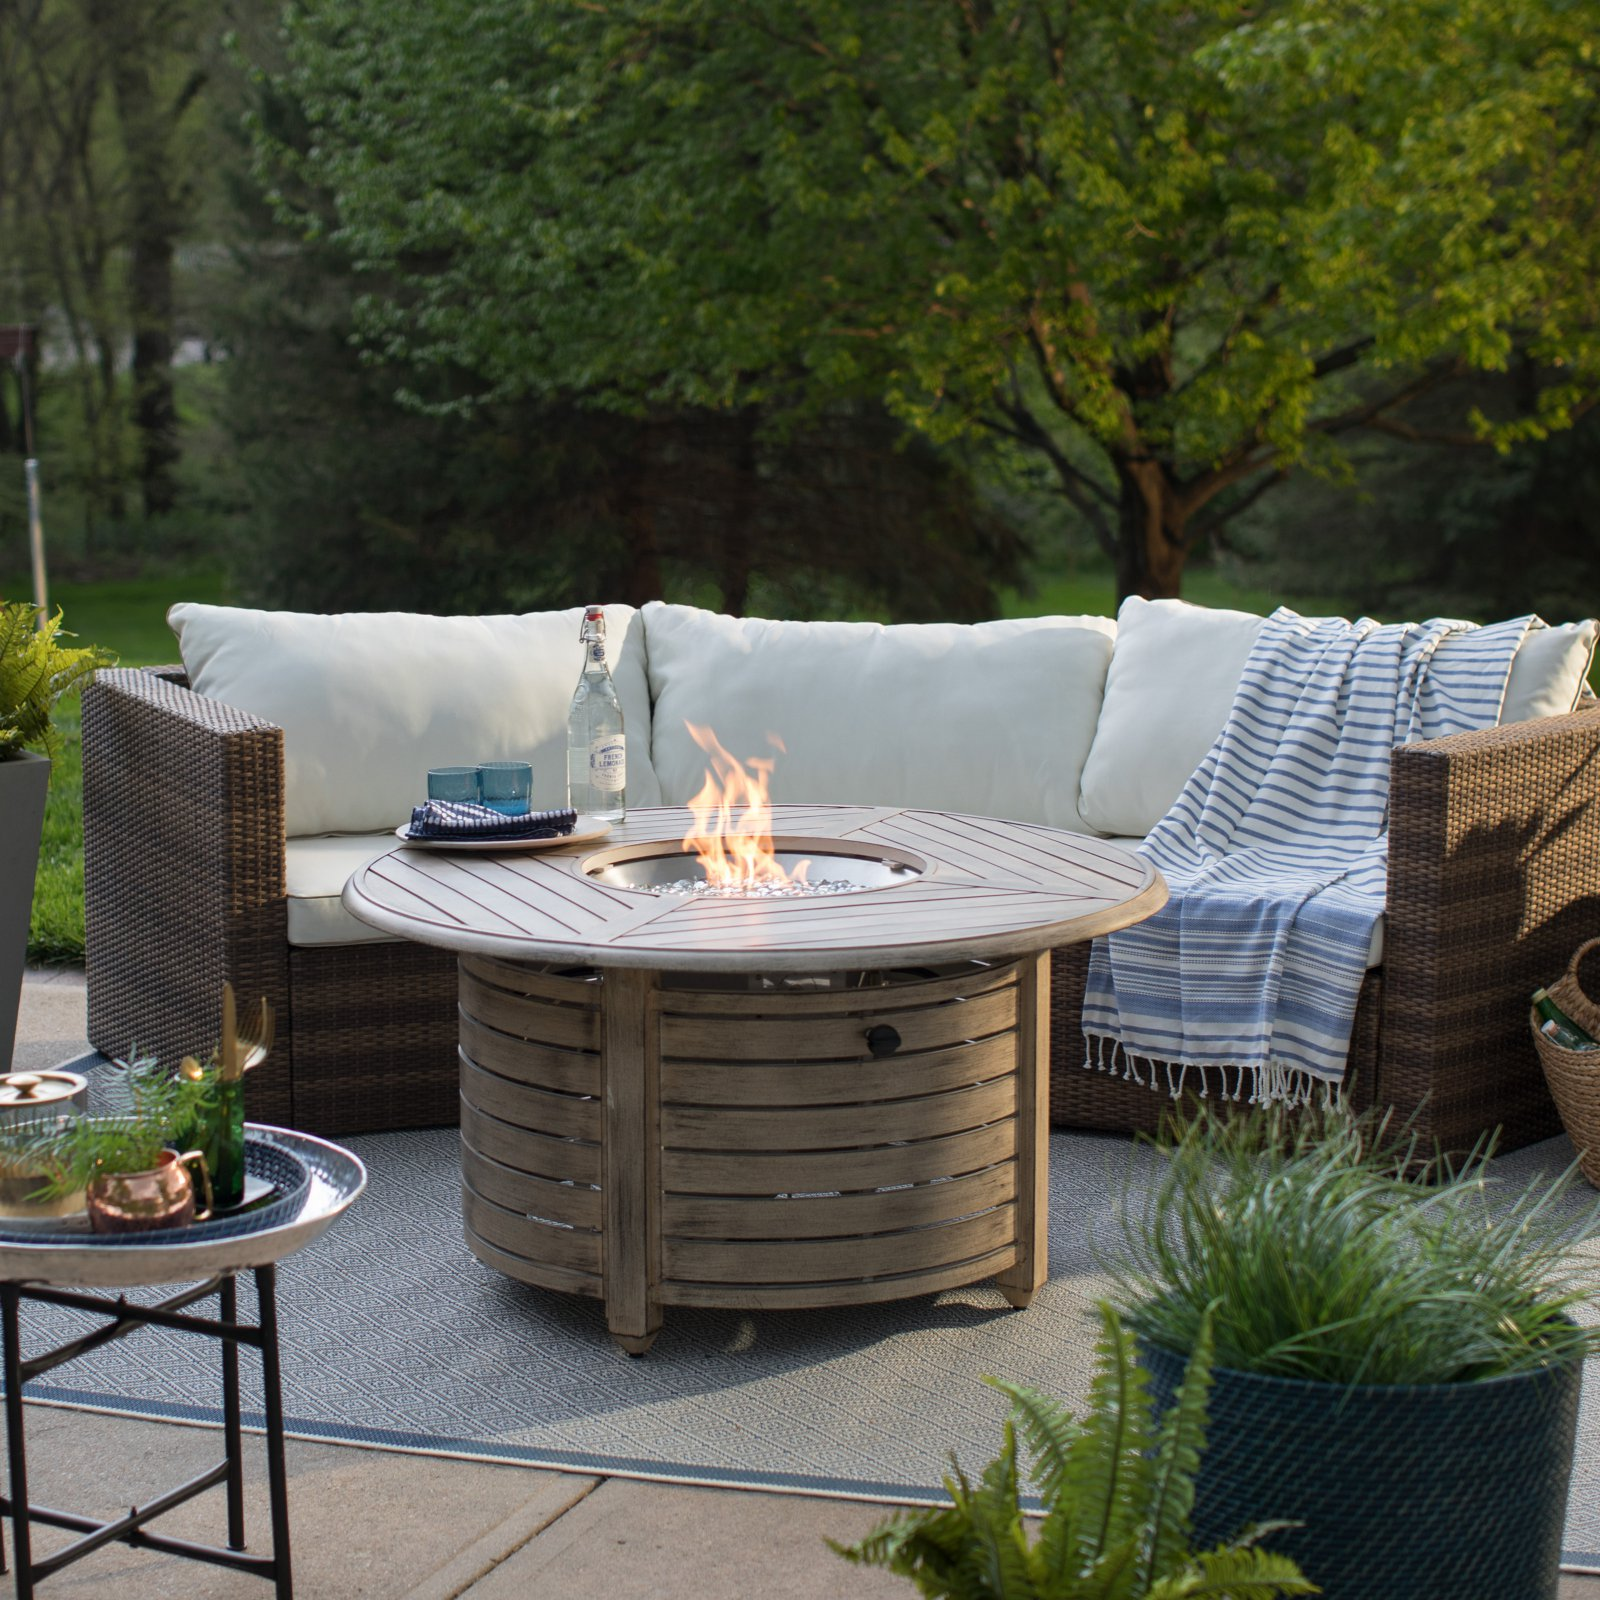 Red Ember 47 in Willow Round Propane Gas Fire Pit Table Walmartcom